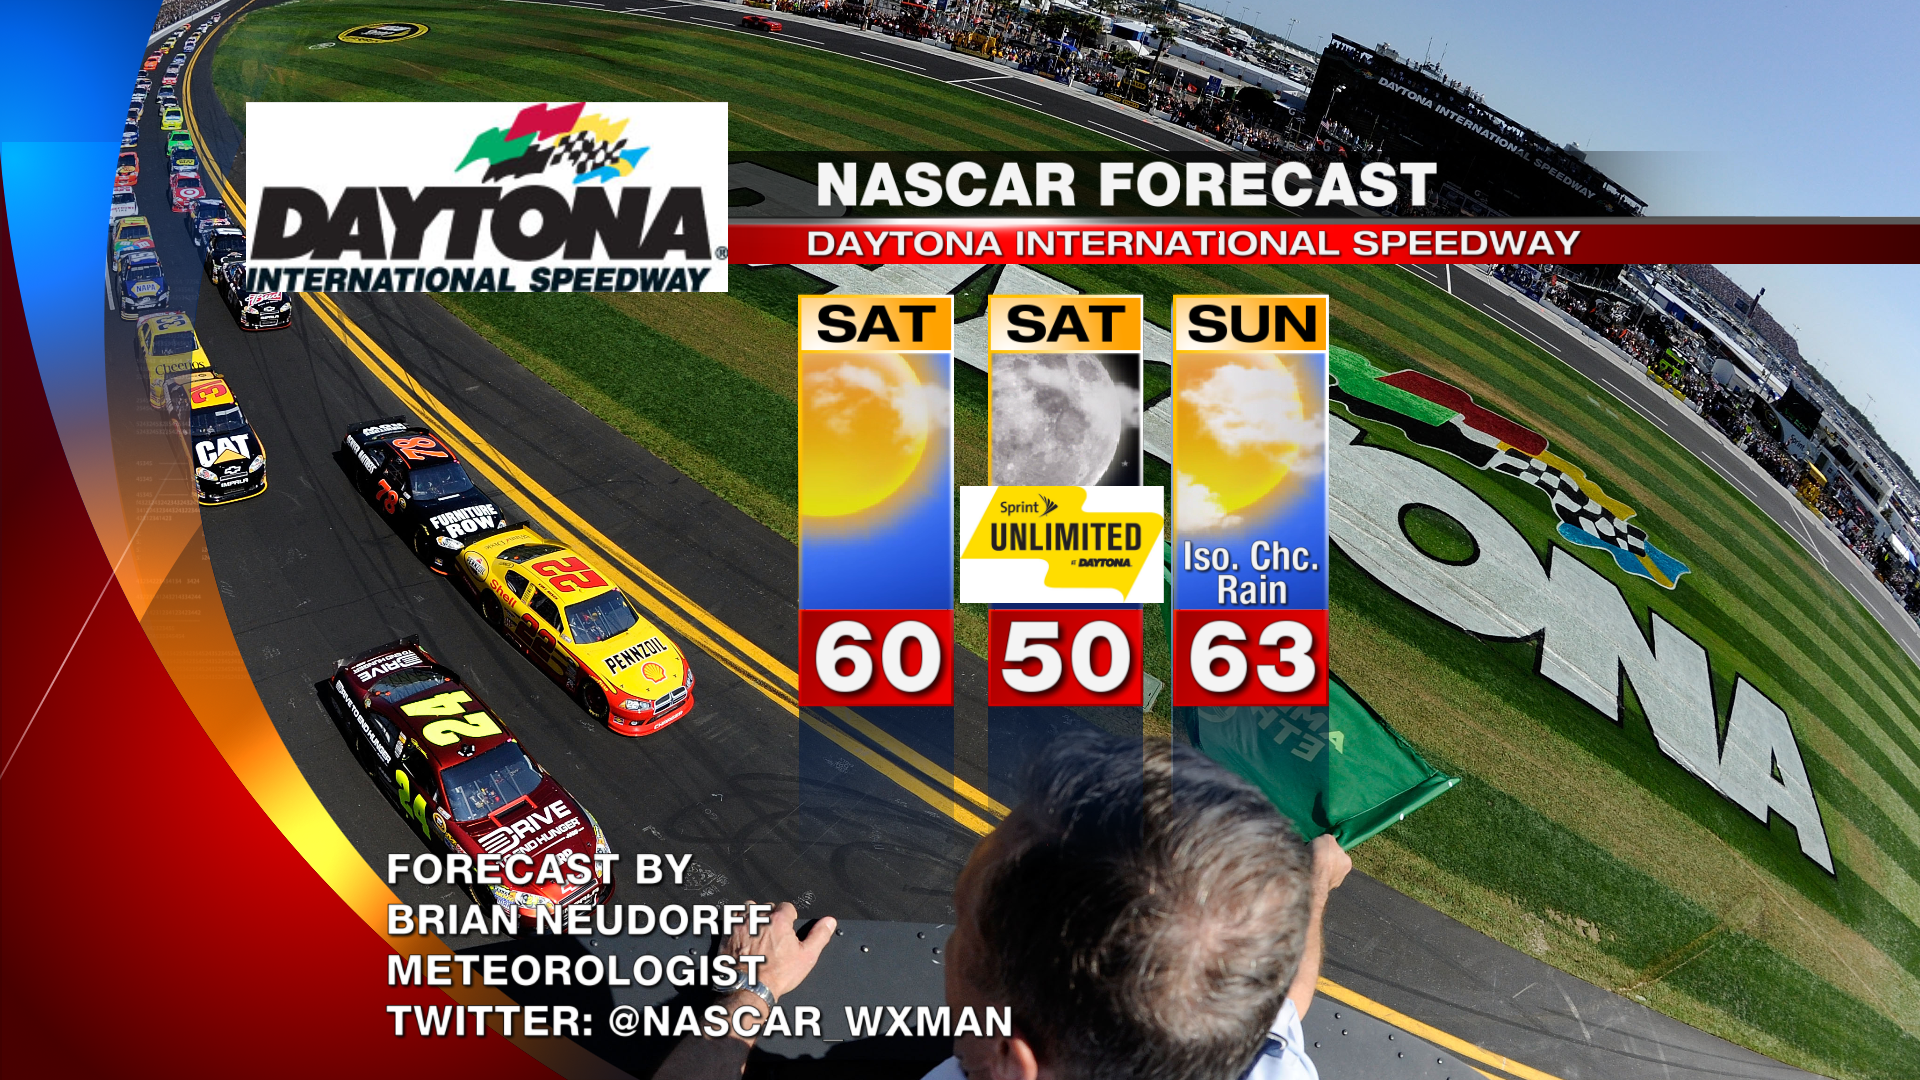 NASCAR Sprint Unlimited 2016 weather forecast: Good looking weekend